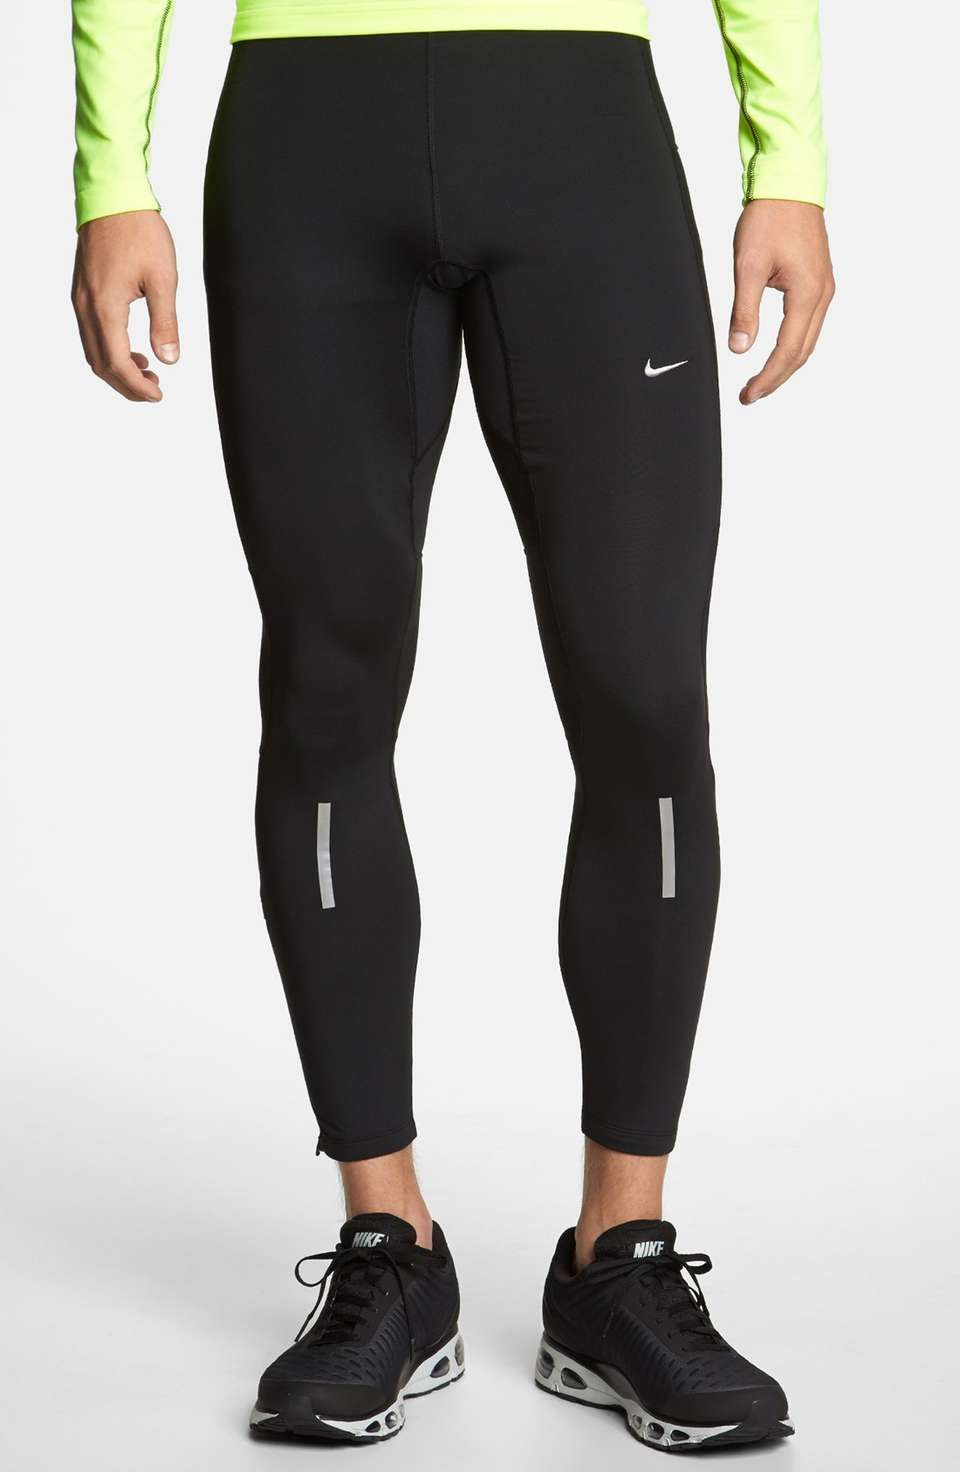 Looking for bike tights or running tights? Something to wear in the gym? Whether your are looking for mild compression, warmth, something against friction, or to show off muscles, these tights made for men, and their footless versions (aka meggings) are all at your service.